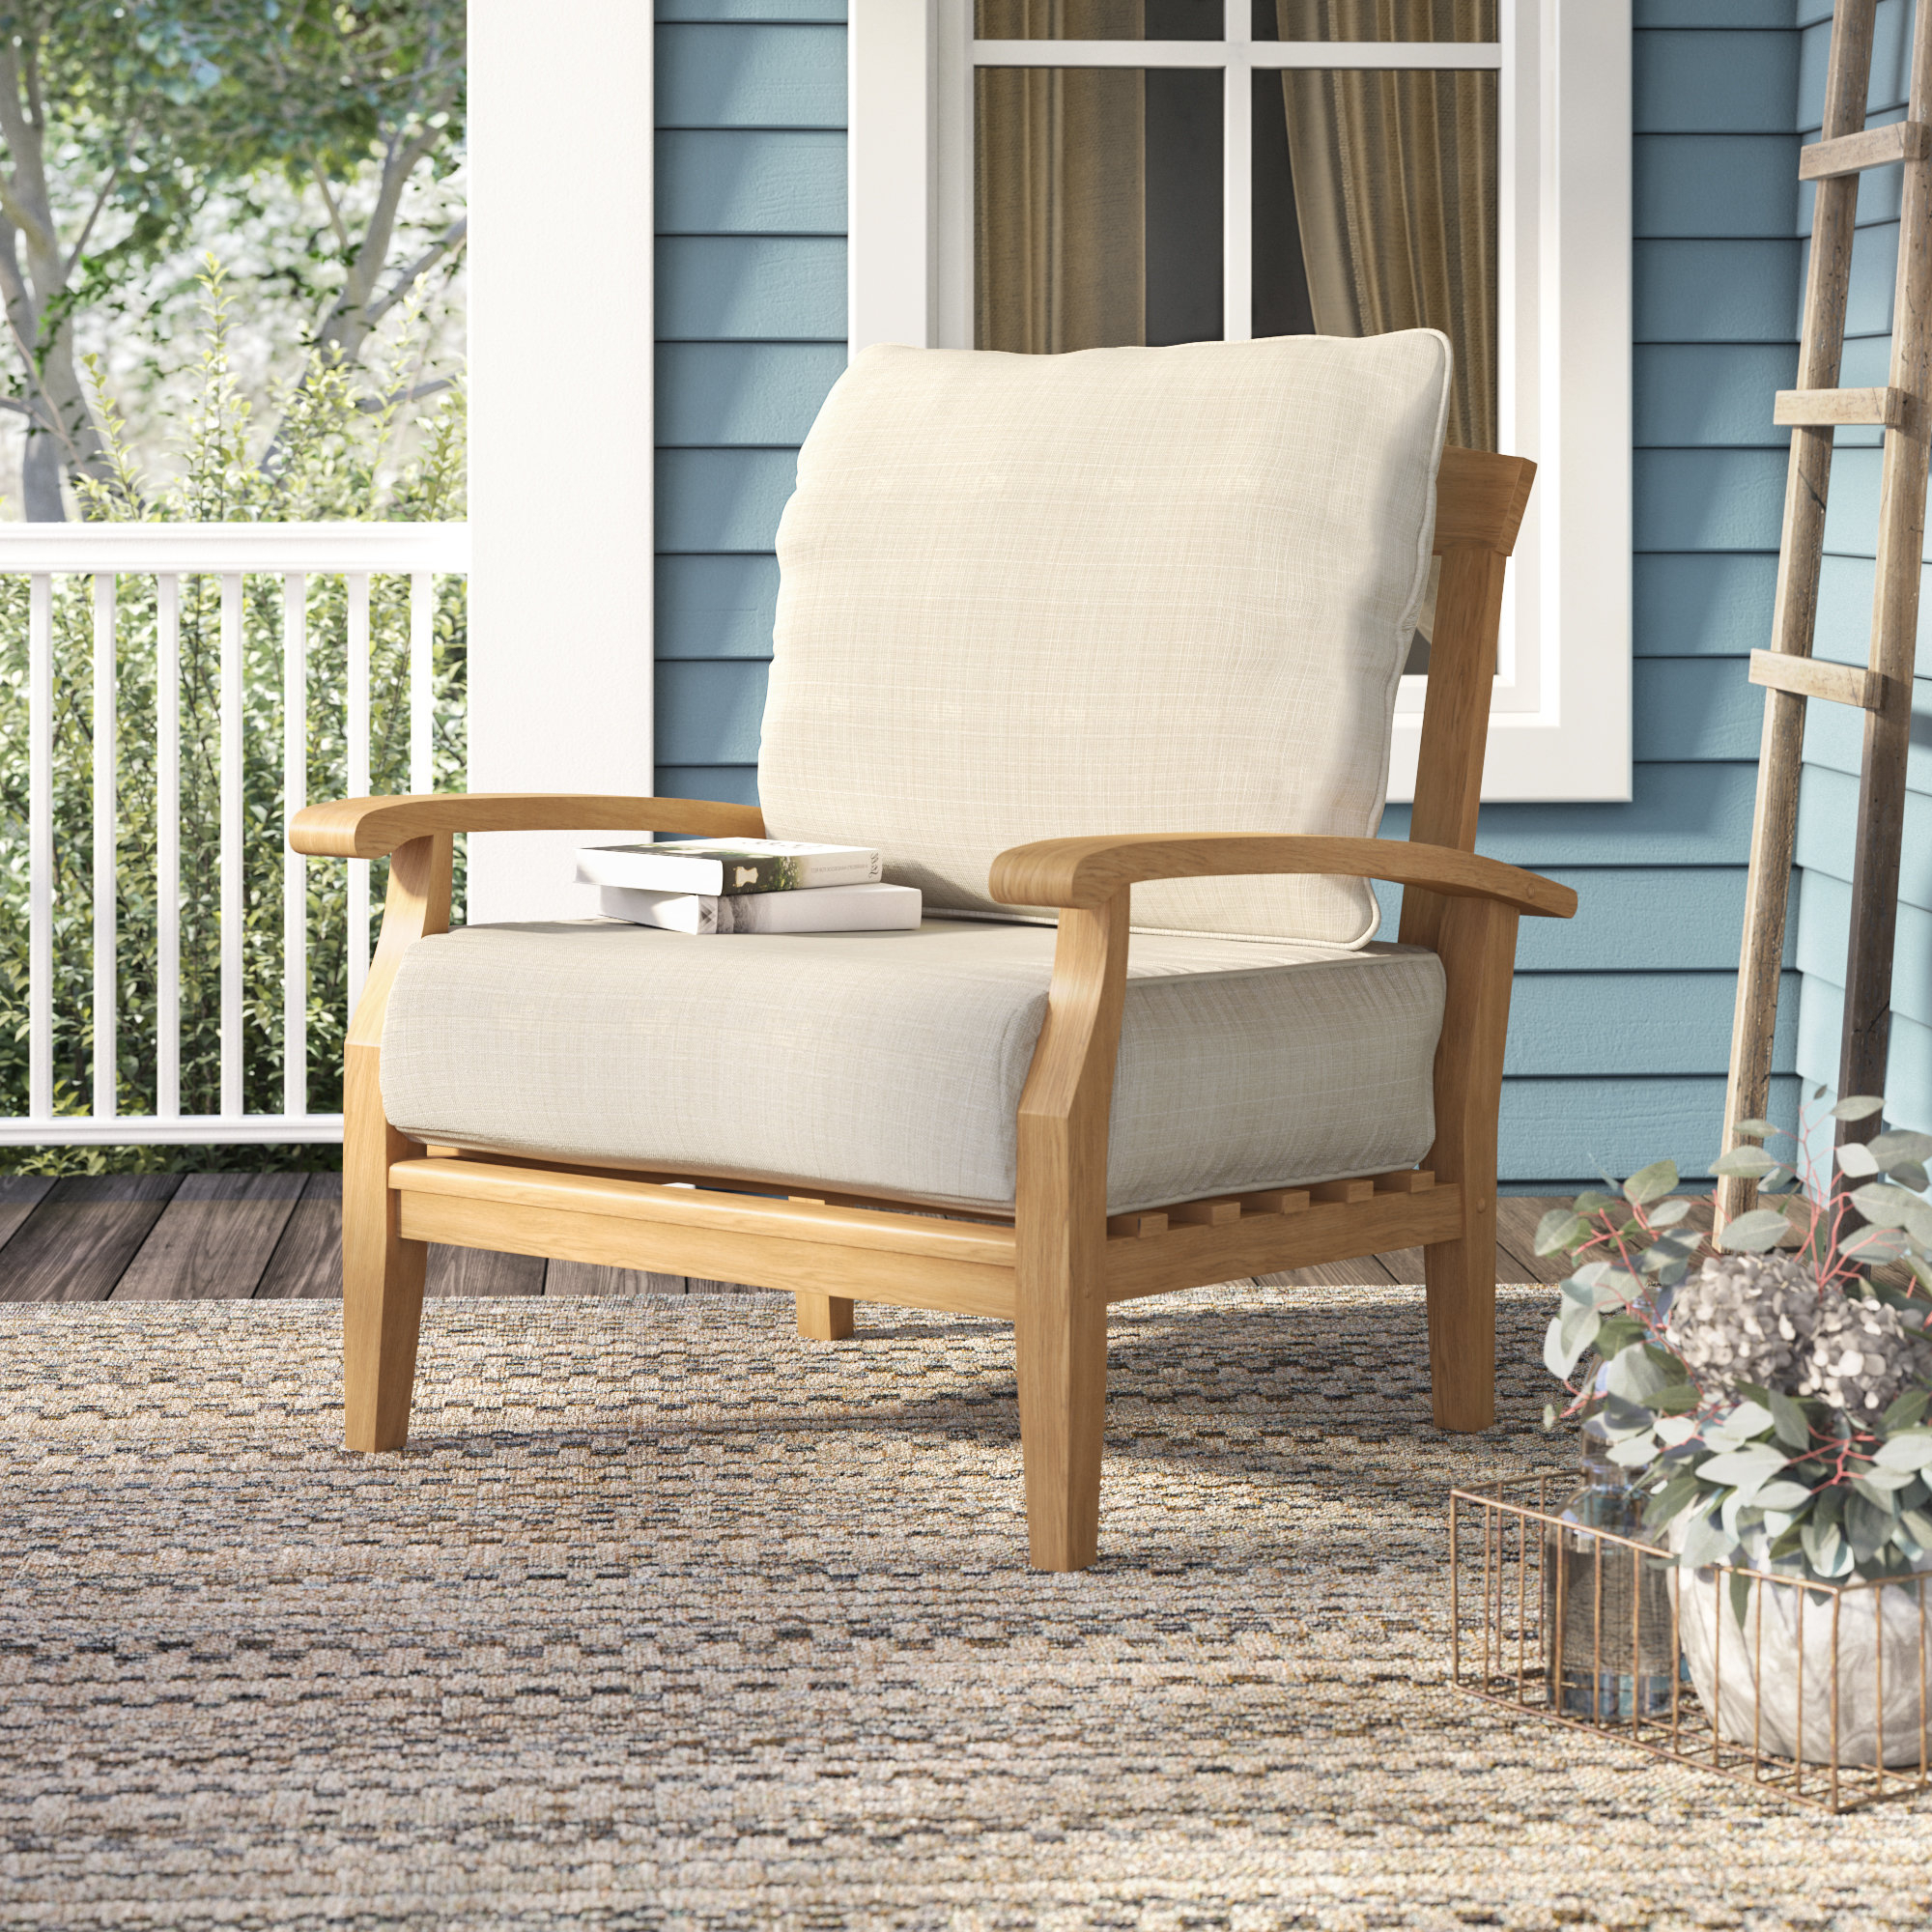 Summerton Teak Patio Chair With Cushions Throughout Famous Summerton Teak Patio Sofas With Cushions (View 15 of 20)